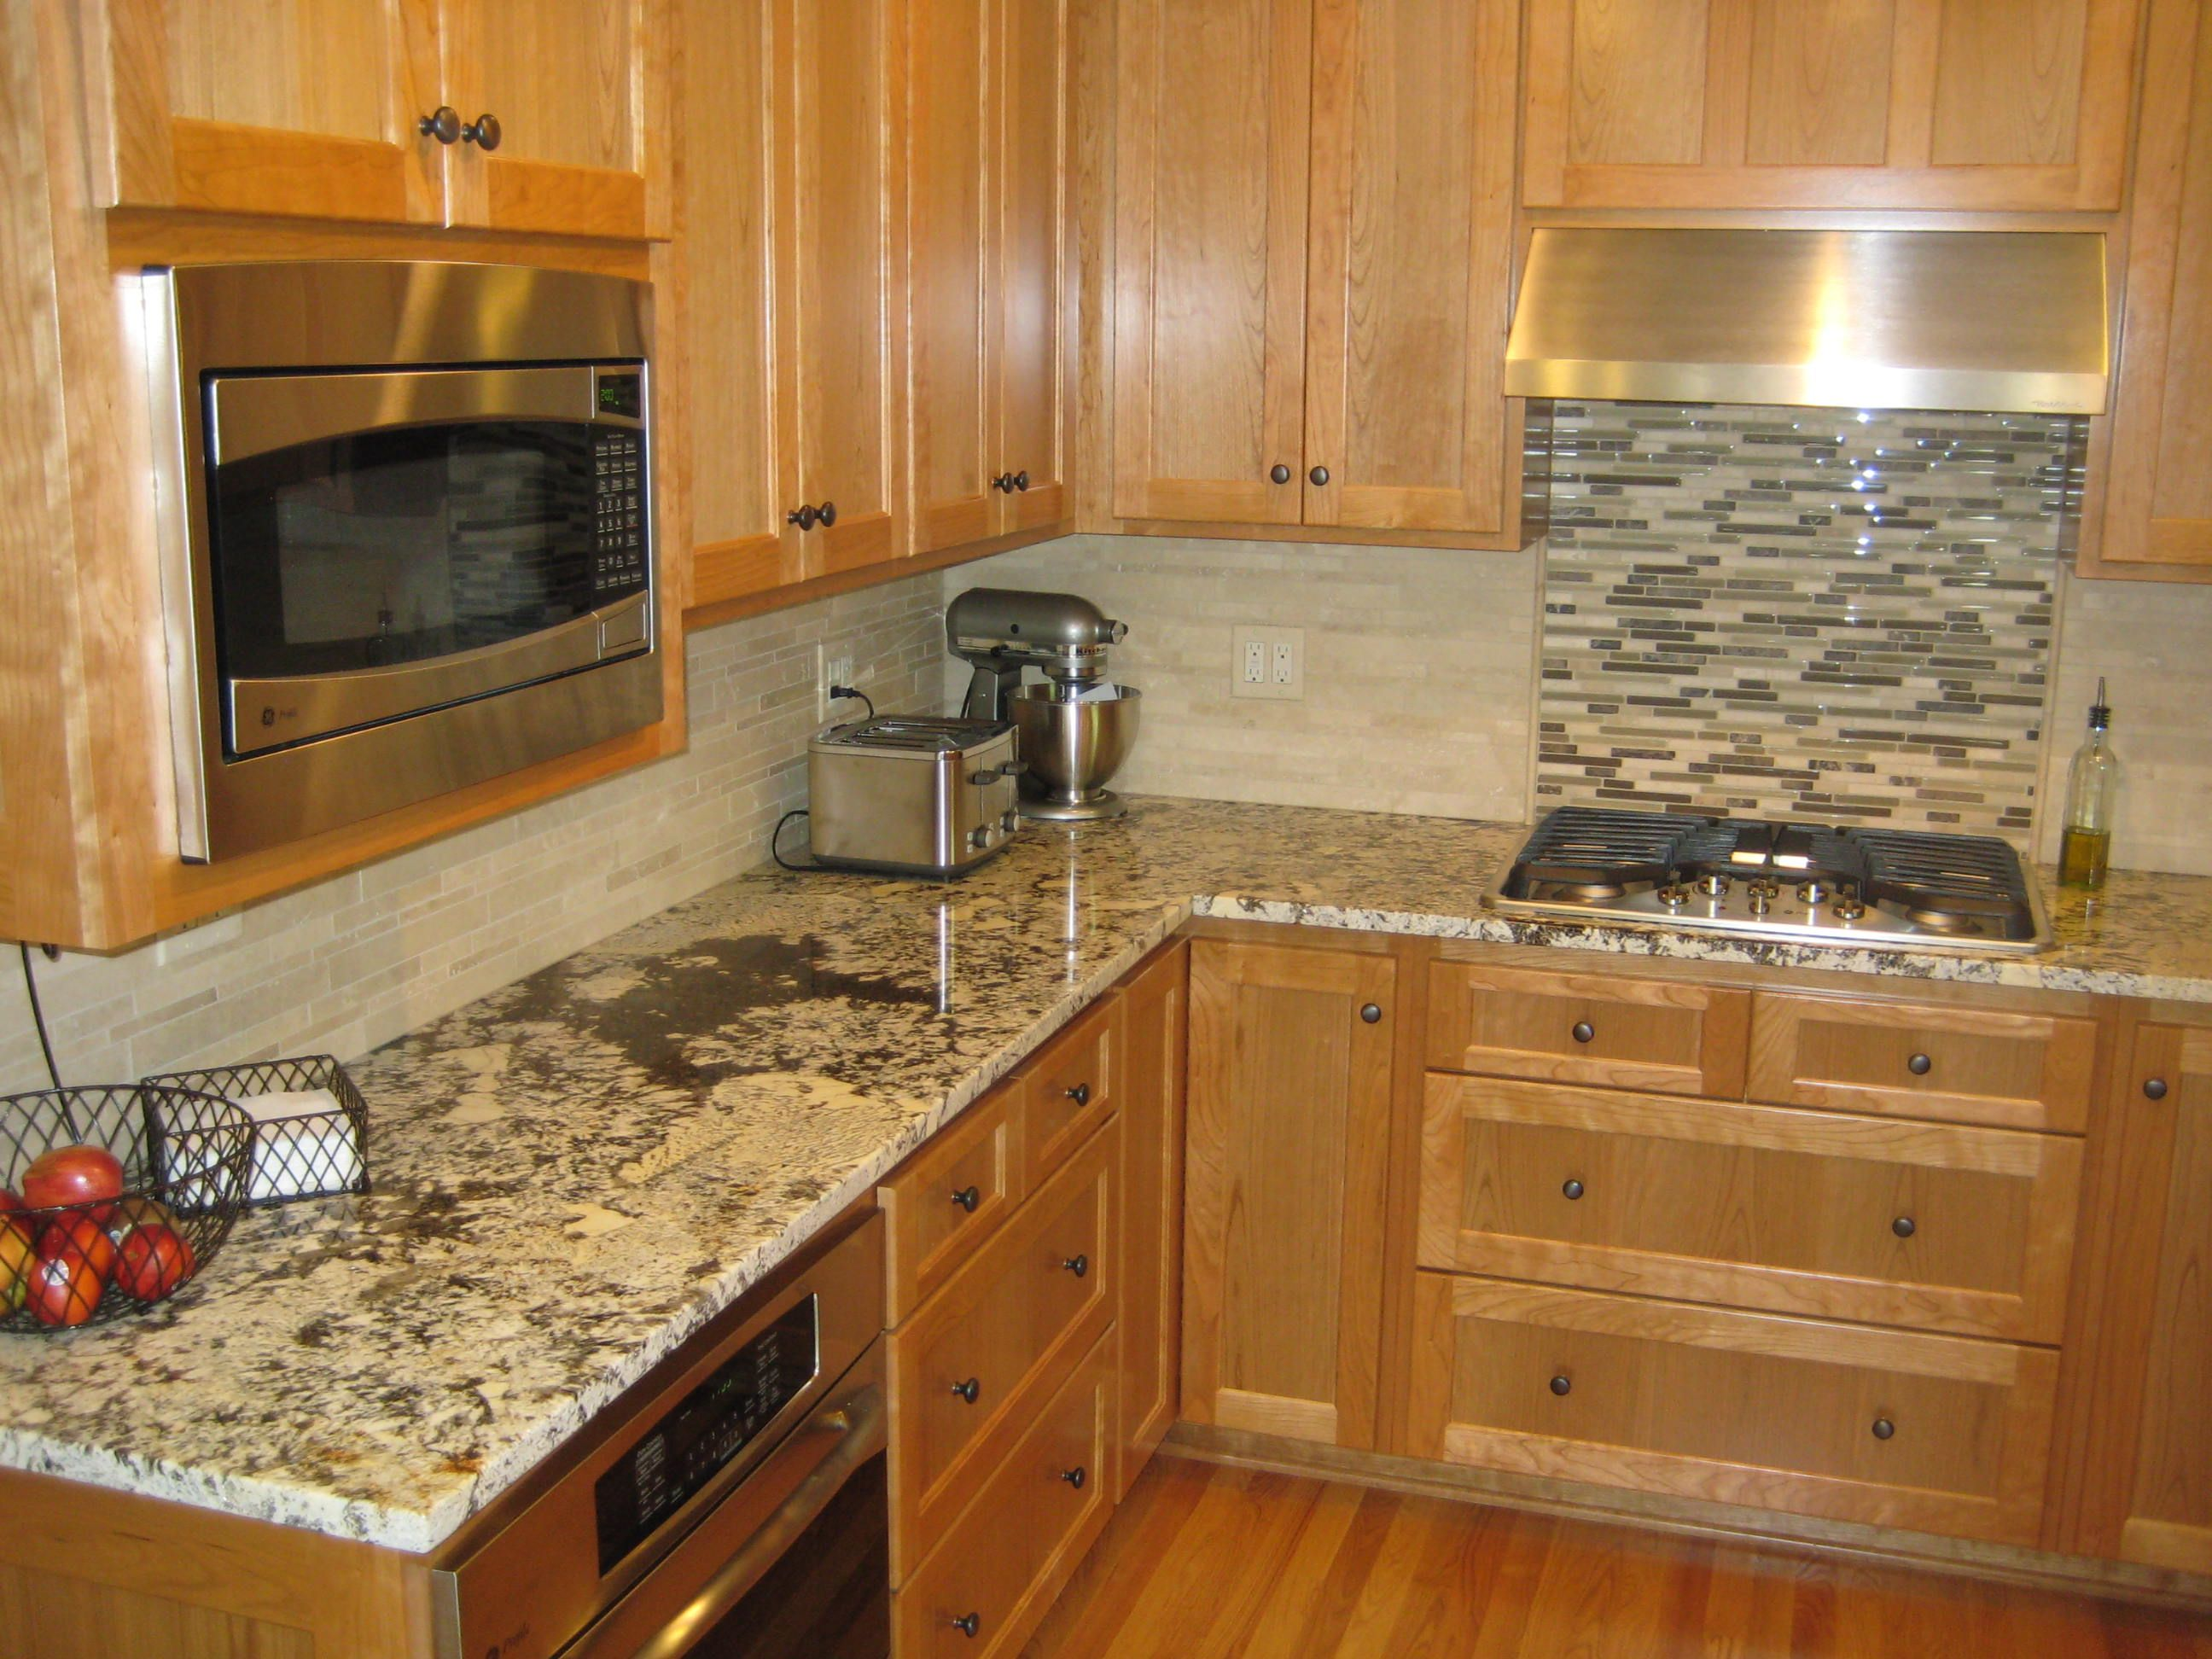 Backsplash Accent Ideas Bianco Antico Granite Like Backsplash But Not Stove